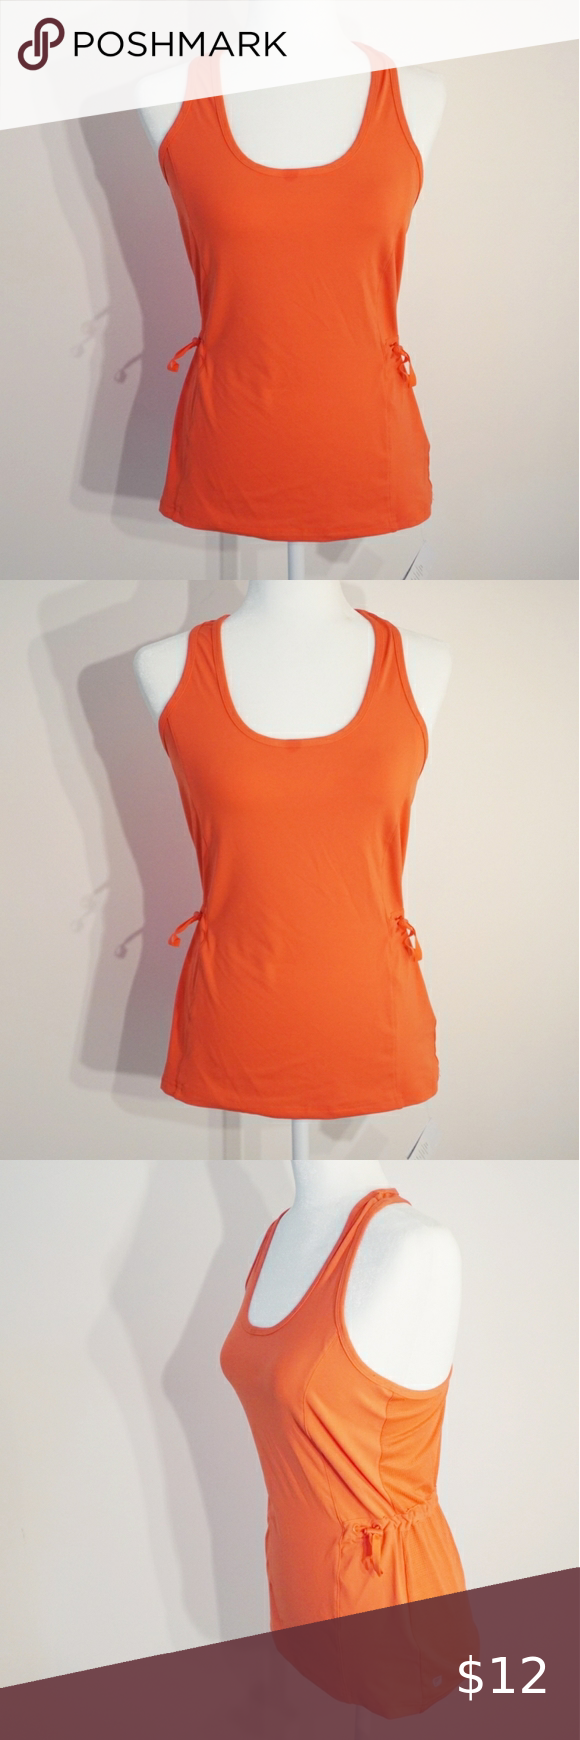 Fabletics Breathable Mesh Drawstring Workout Tank Athletic Tank Tops Fabletics Workout Tanks